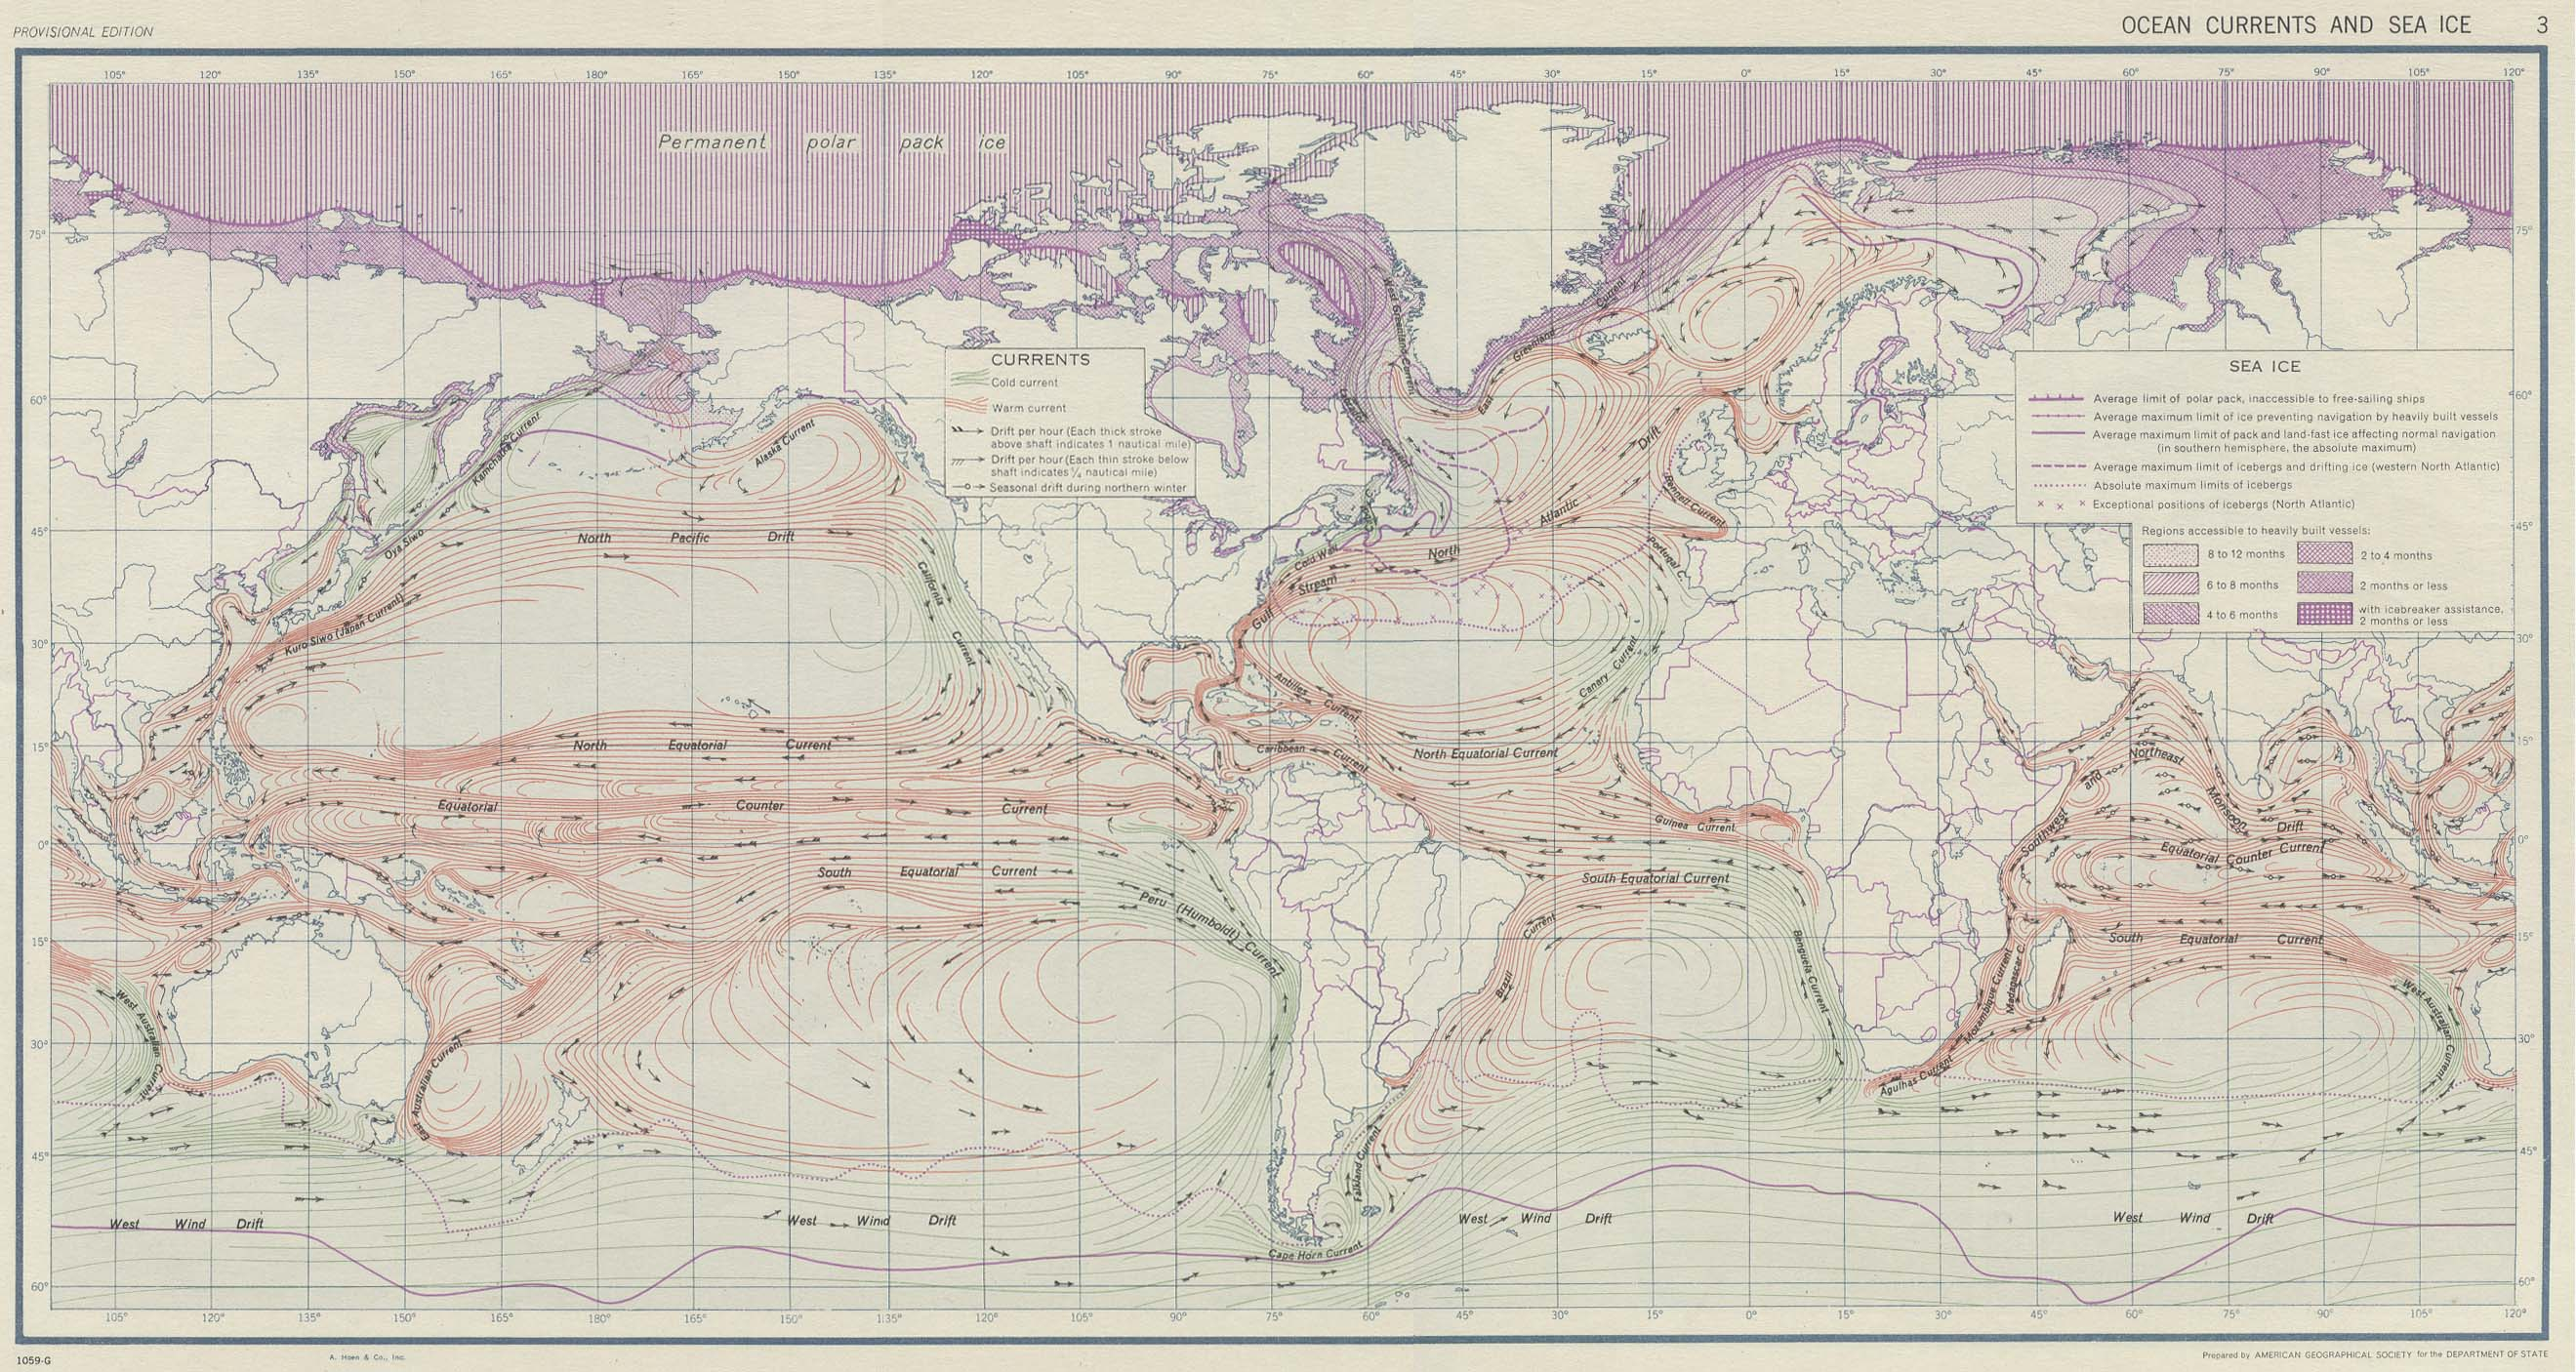 Ocean_currents_1943.jpg